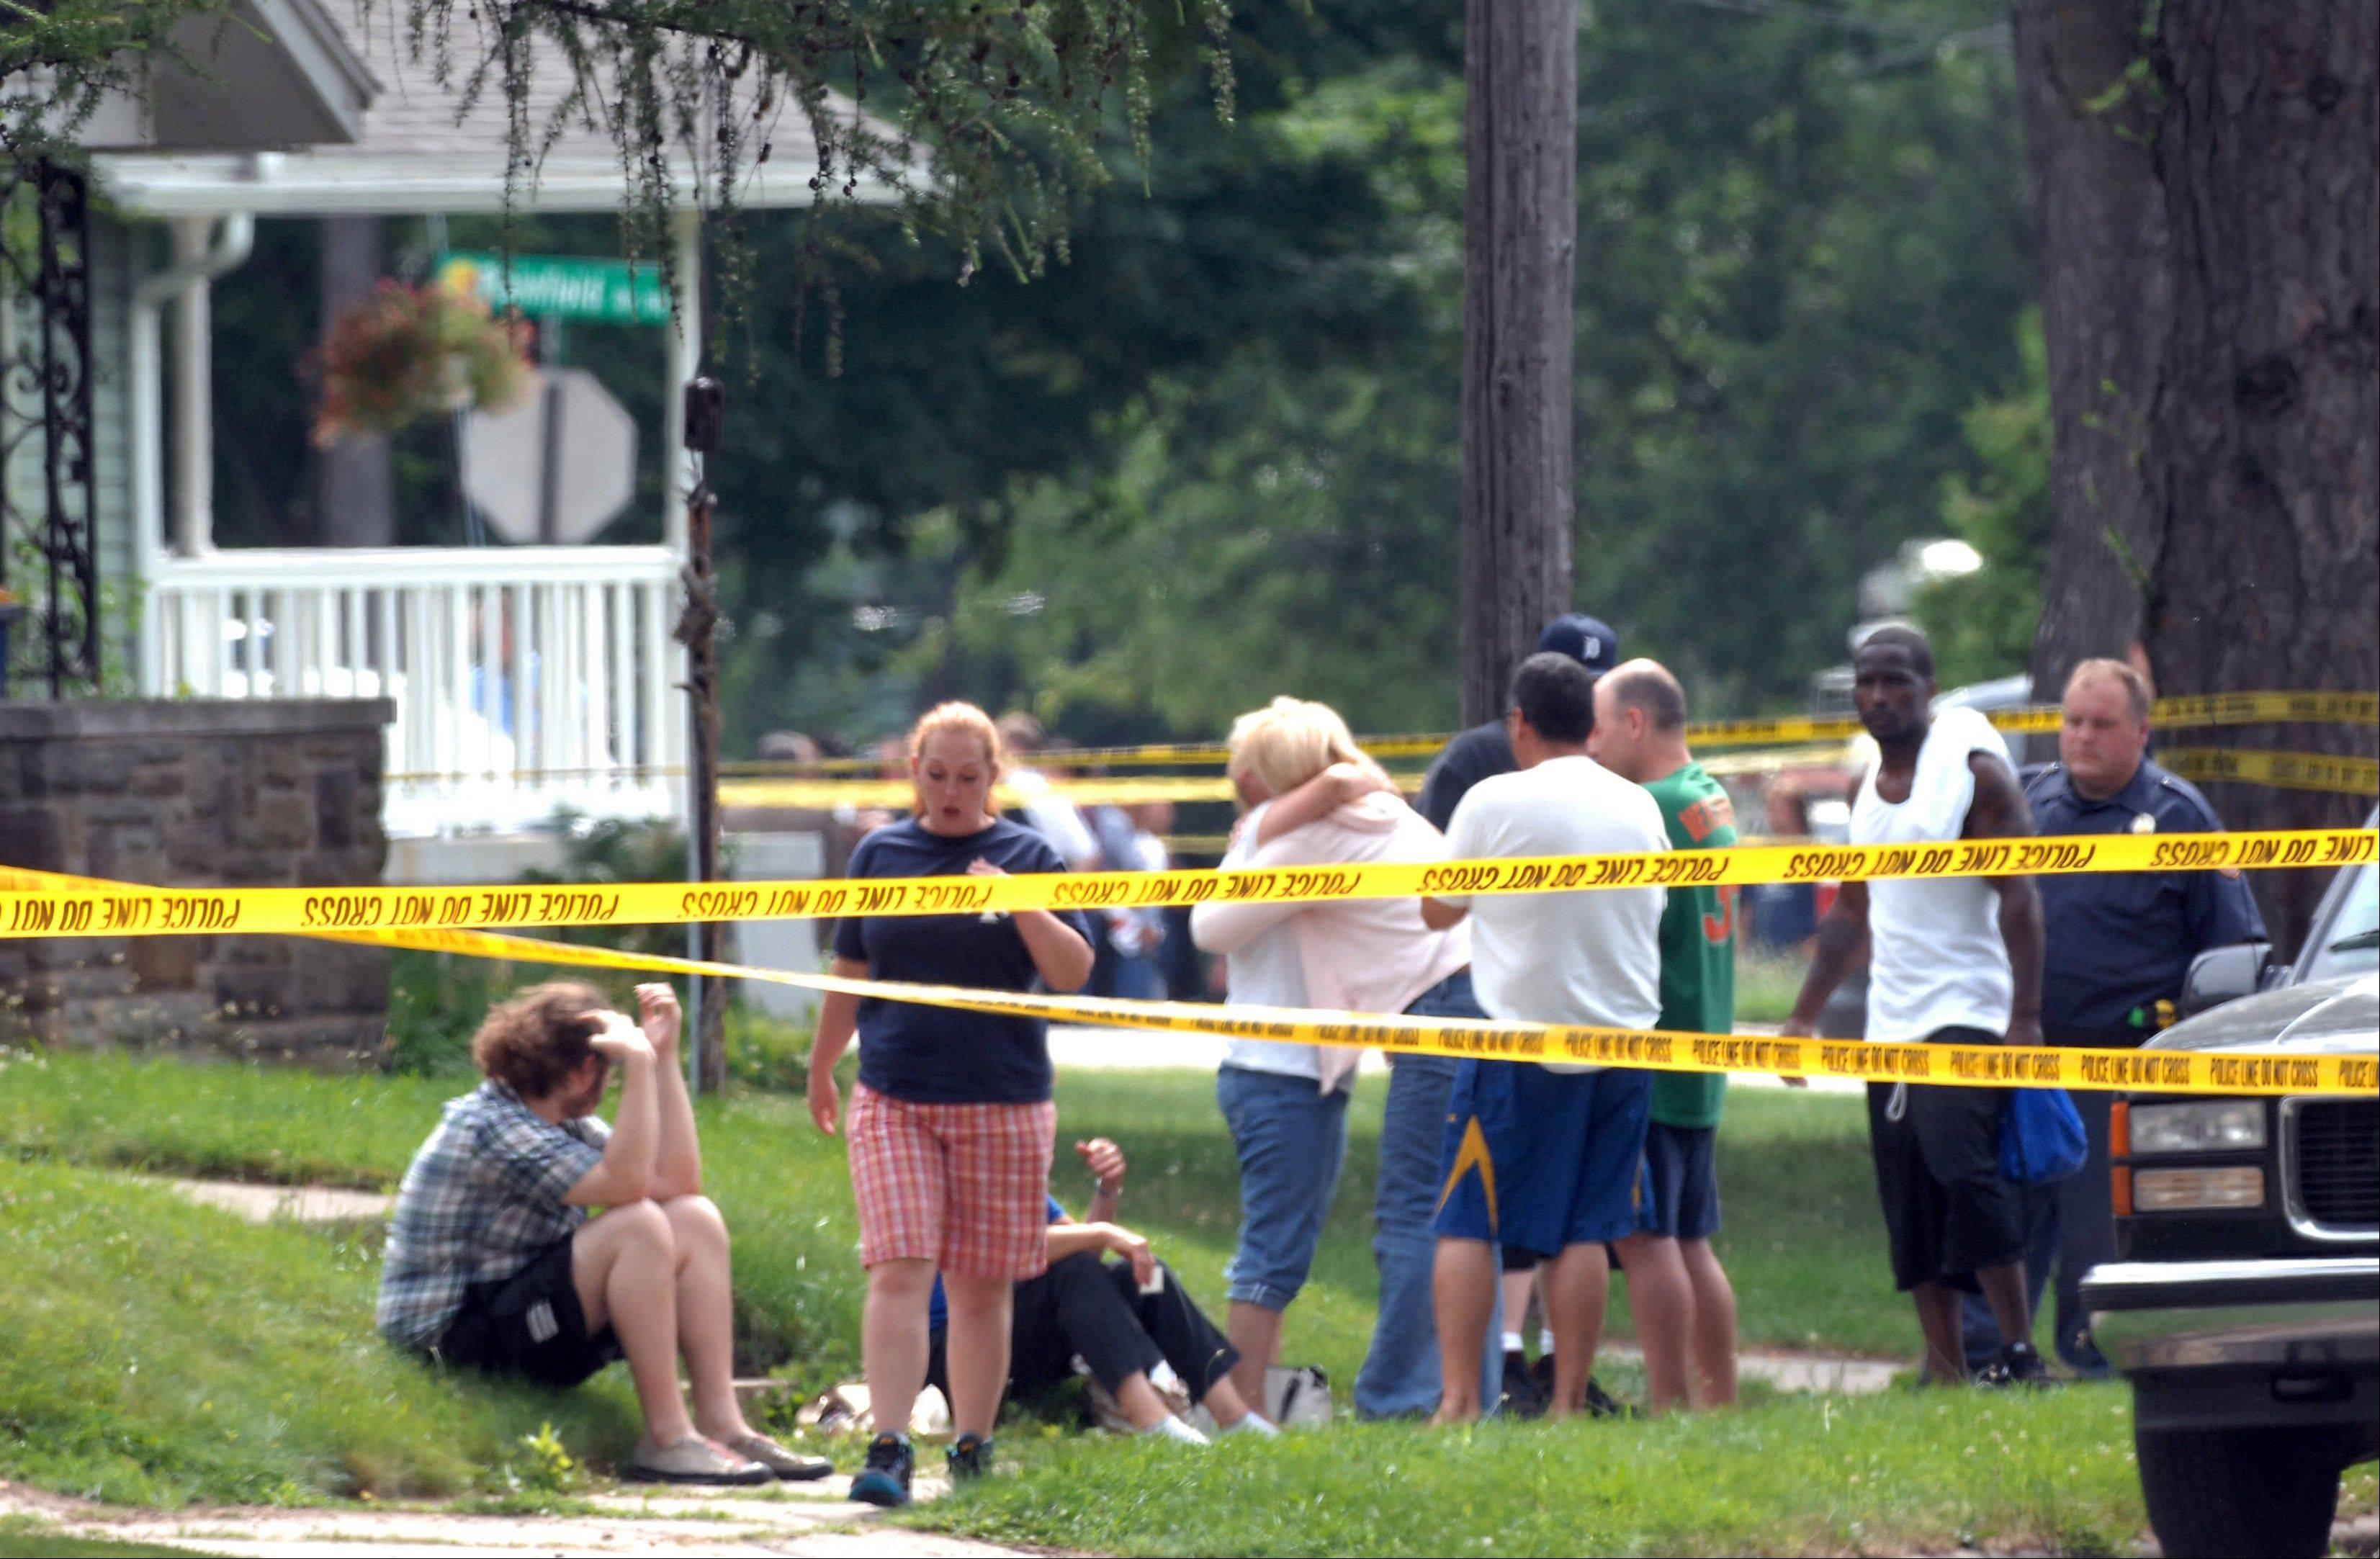 People react near the scene in Grand Rapids, Mich., where three bodies were found Thursday, July 7, 2011. Police say seven people have been fatally shot at two locations in the western Michigan city and the victims include a child. (AP Photo/The Grand Rapids Press, Chris Clark)